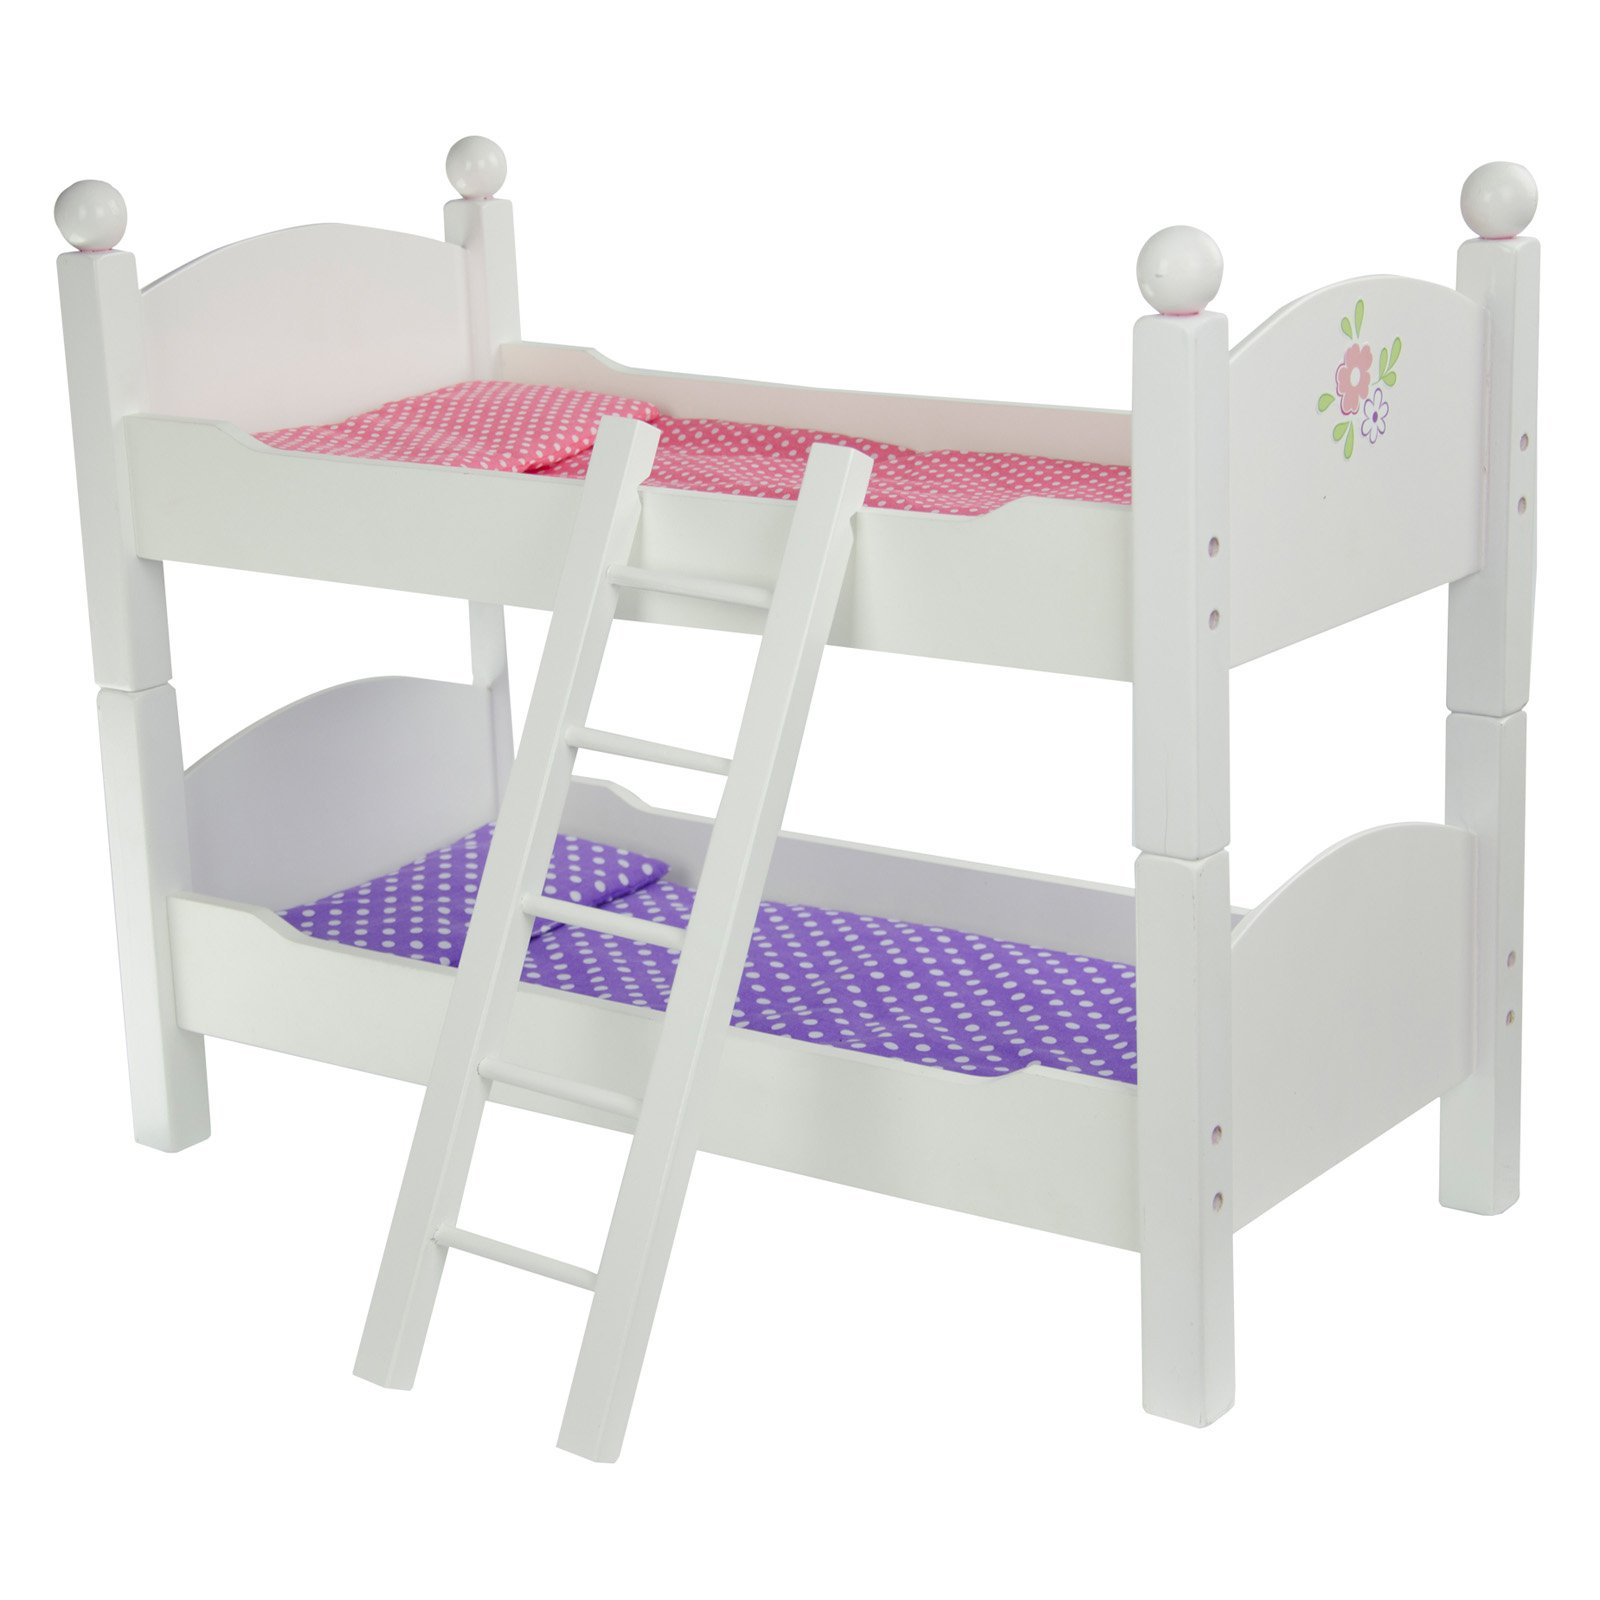 Oliviau0027s Little World   Princess Double Bunk Bed (White) Wooden 18 Inch  Doll Furniture   Walmart.com